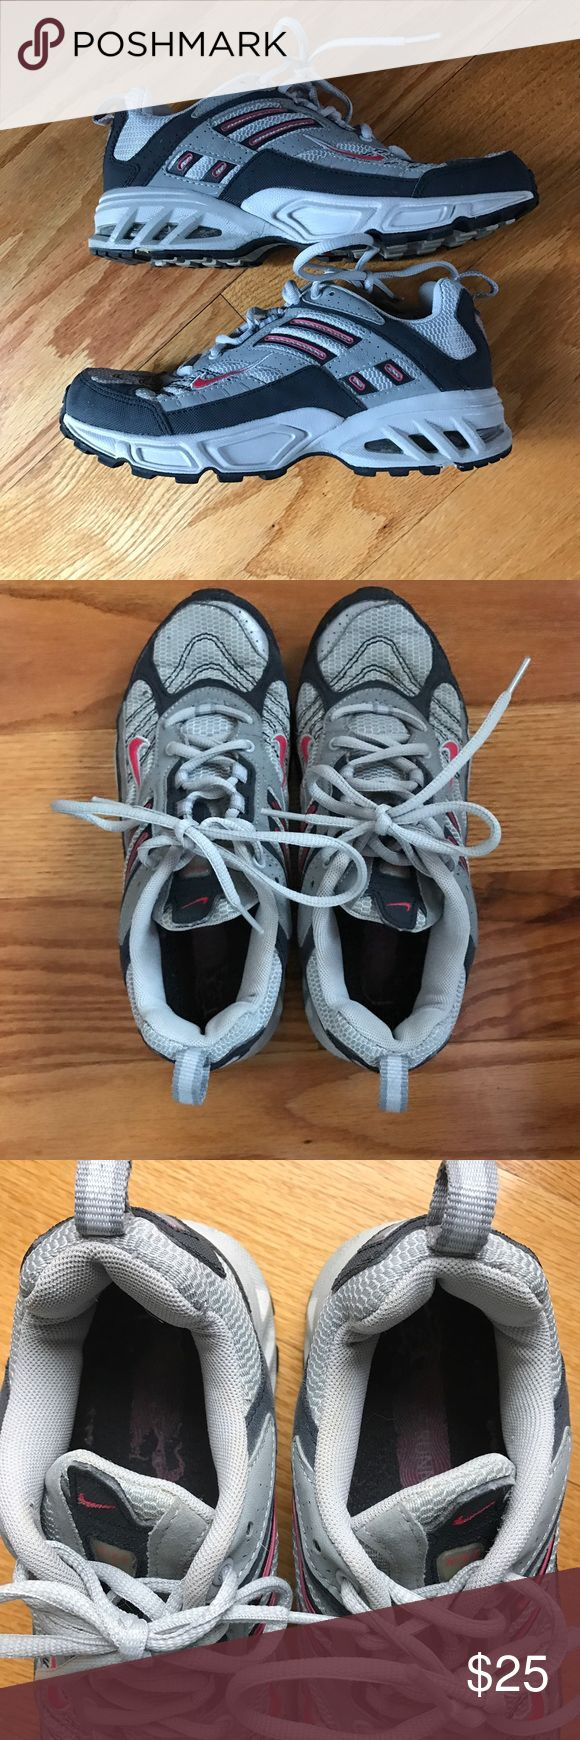 Women's Nike Air Trail Sneakers Nike Air Trail Sneakers with stone shield bottom, size 8. Great condition , inside foot label a little worn out (see pic) other than that they are in great shape & great buy!!! Nike Shoes Sneakers